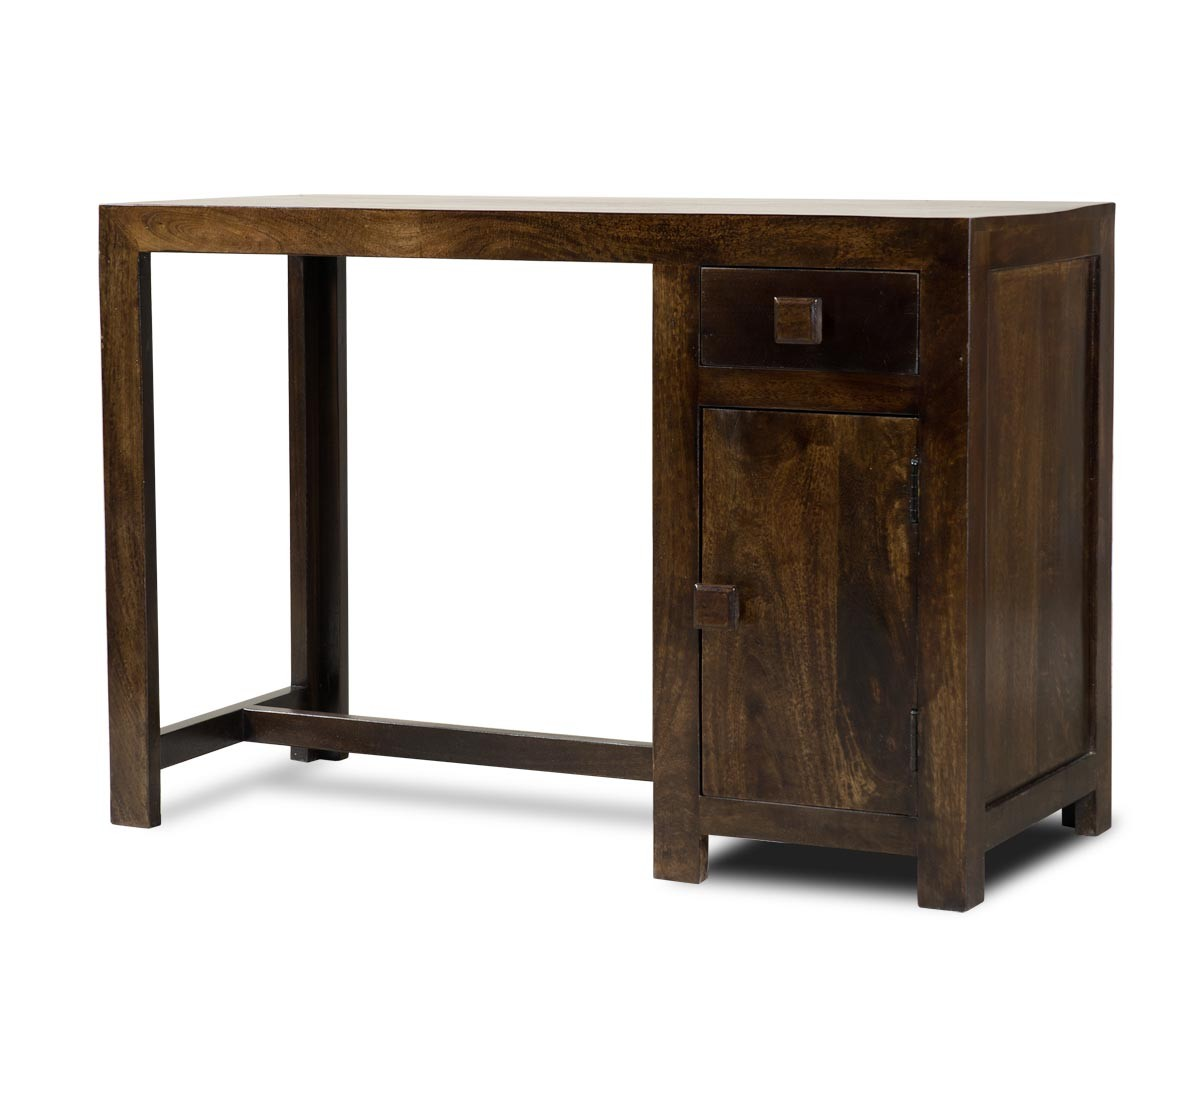 dark wood writing desk Handcrafted by our amish artisans, these beautiful writing desks are available   room in your home or office in a wide variety of solid woods from oak to cherry.